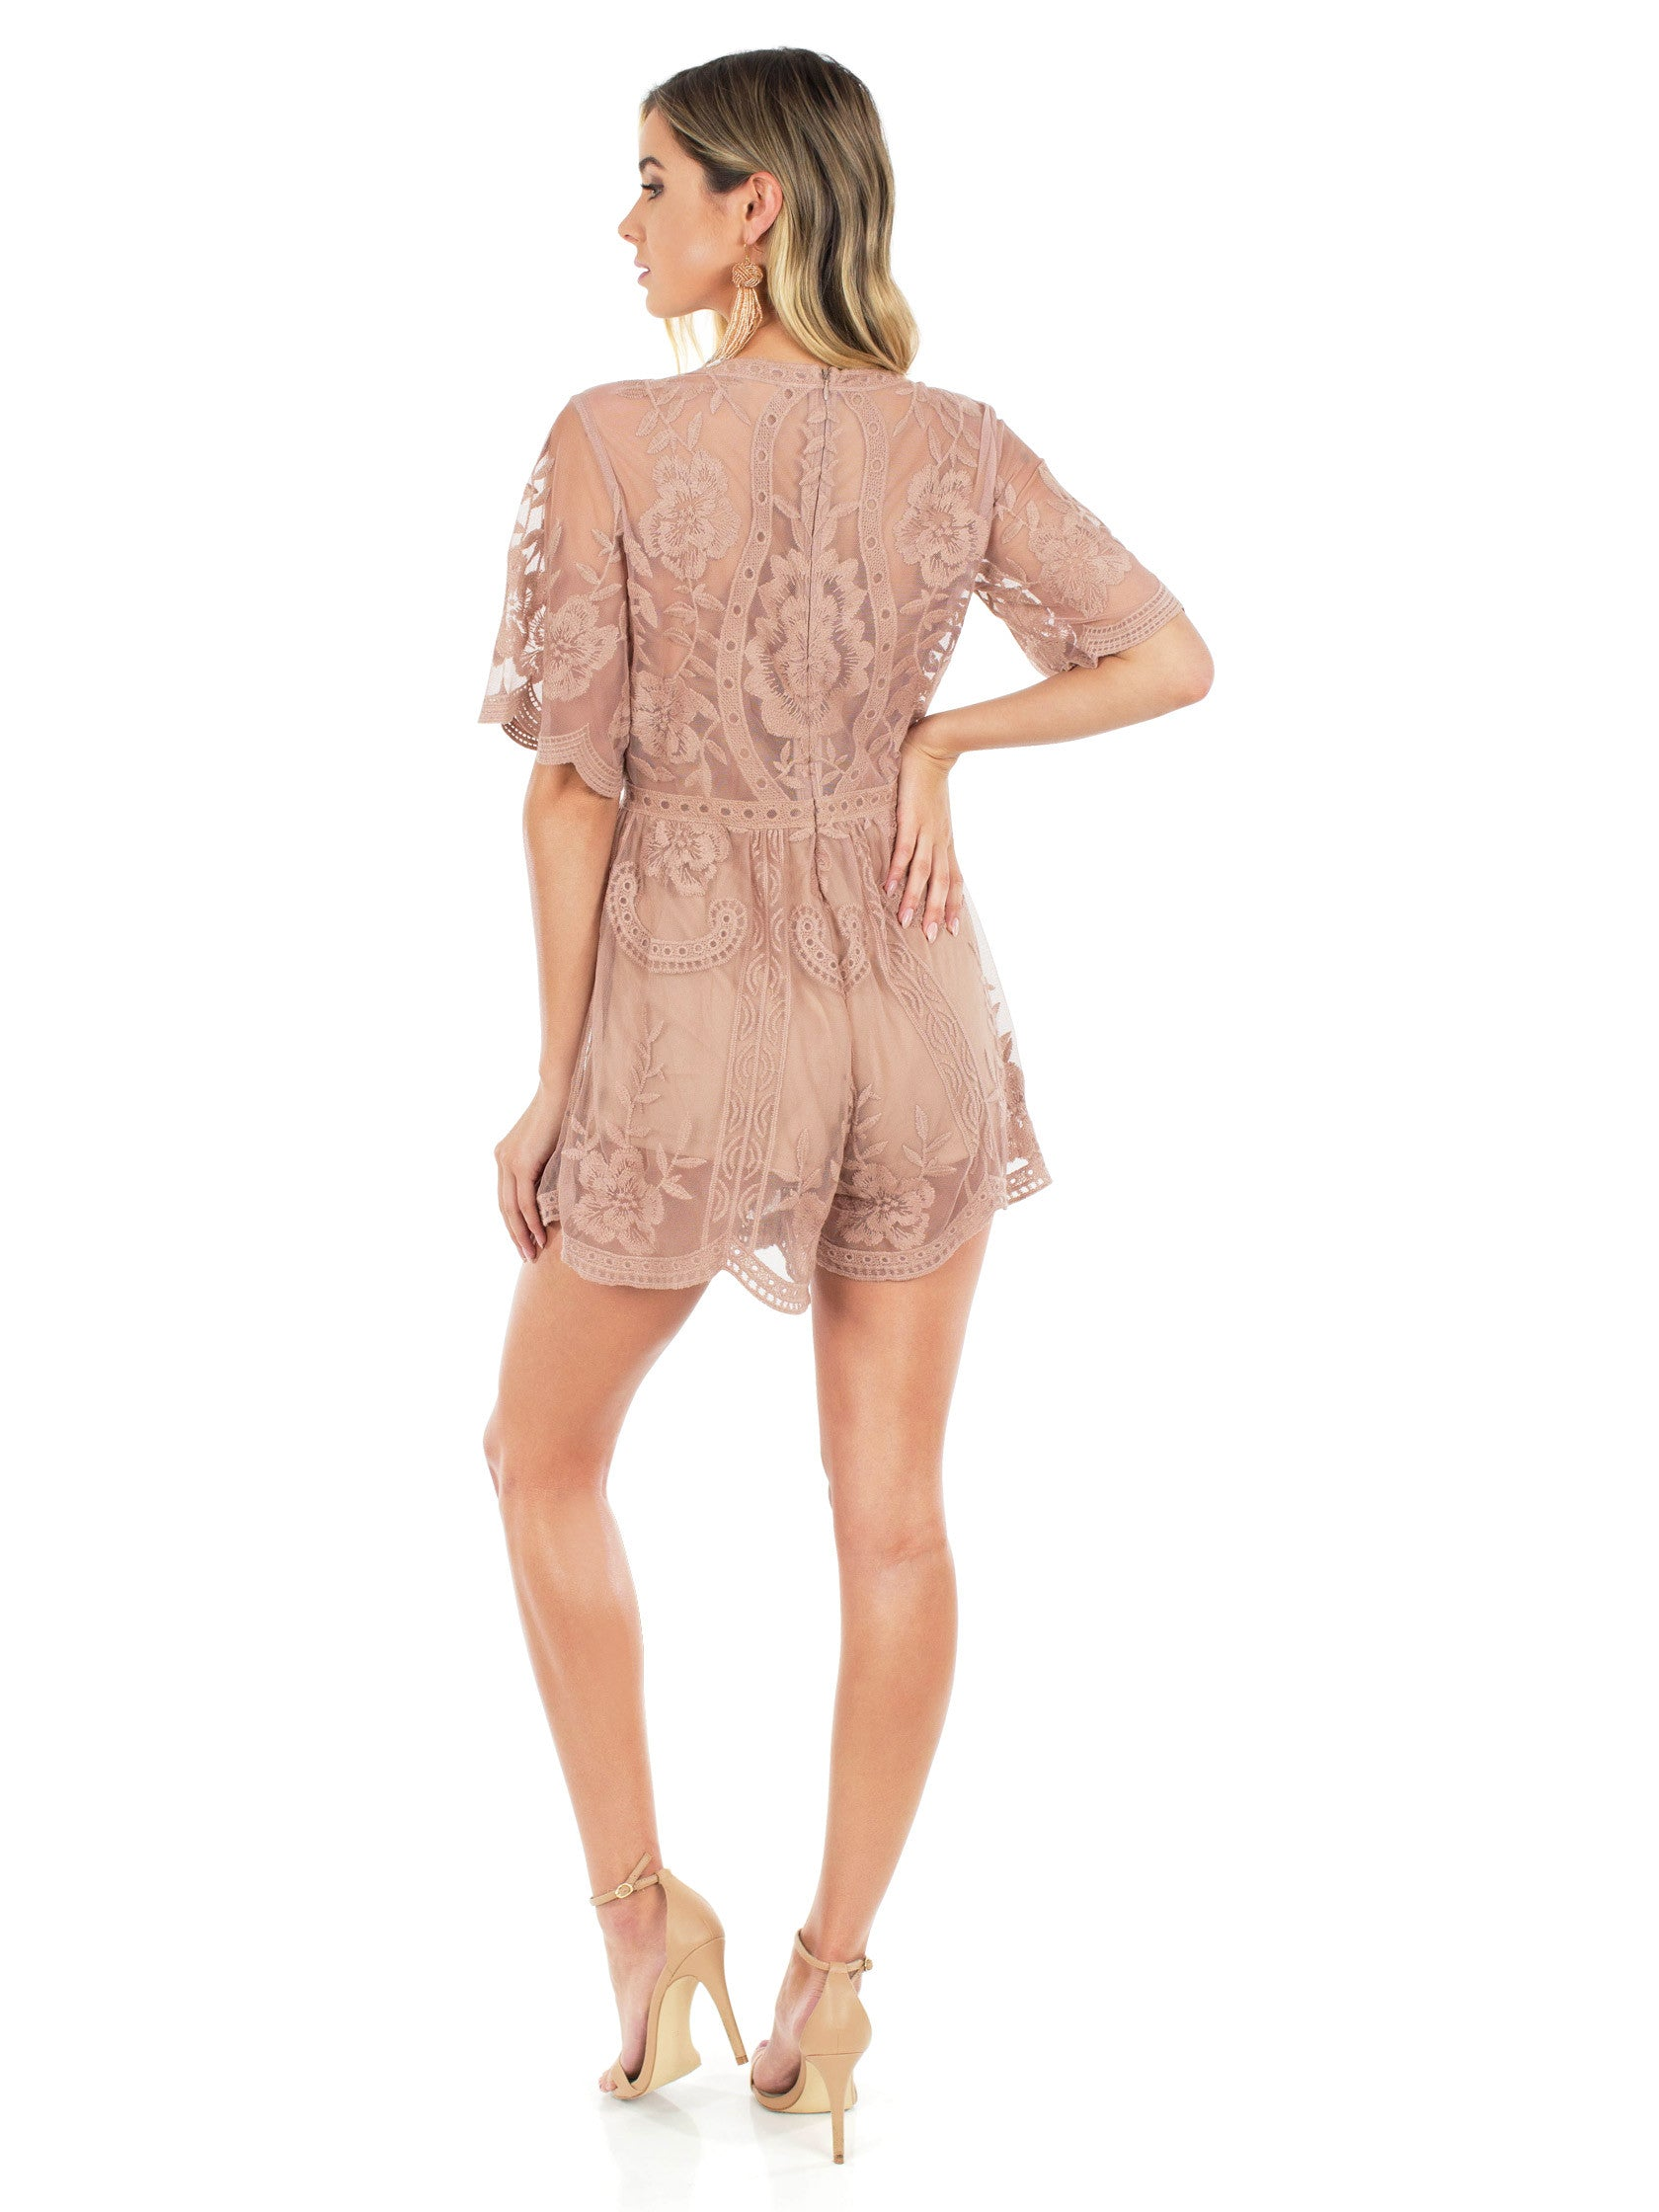 Women wearing a romper rental from FashionPass called Breaking Hearts Romper